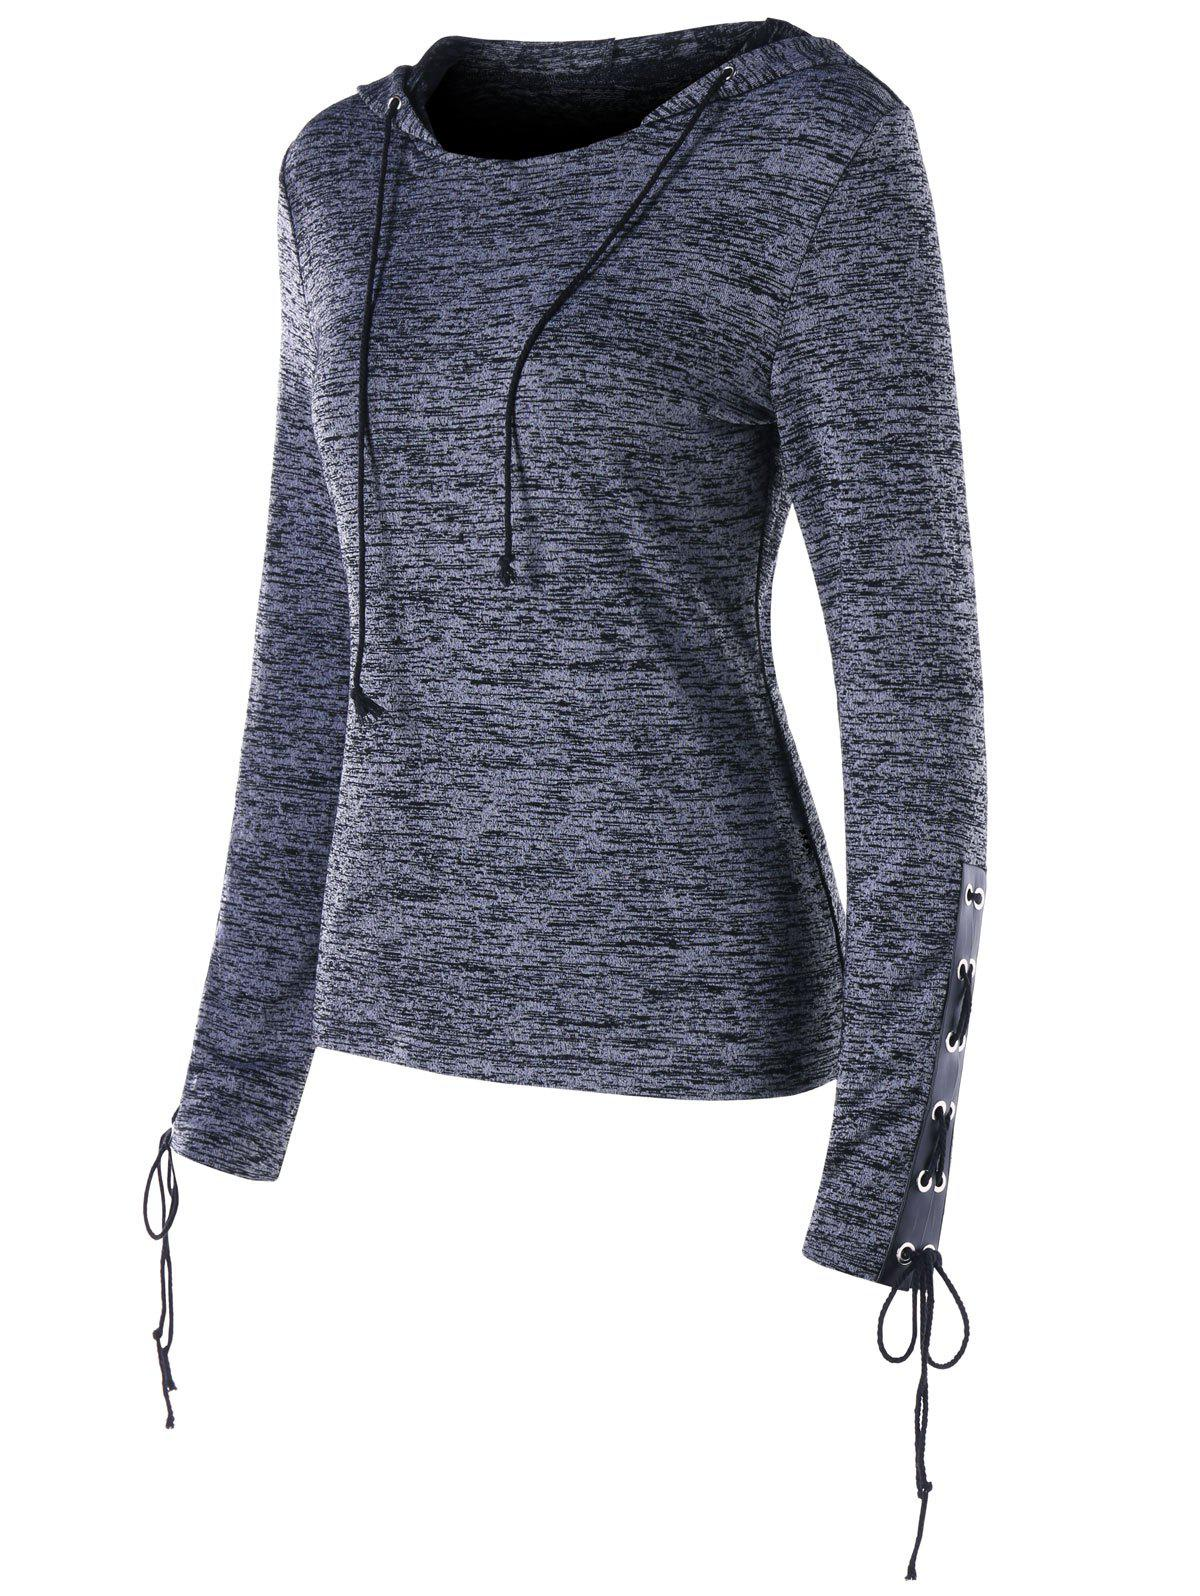 Marled Drawstring Neck Lace Up Hoodie - GRAY 2XL